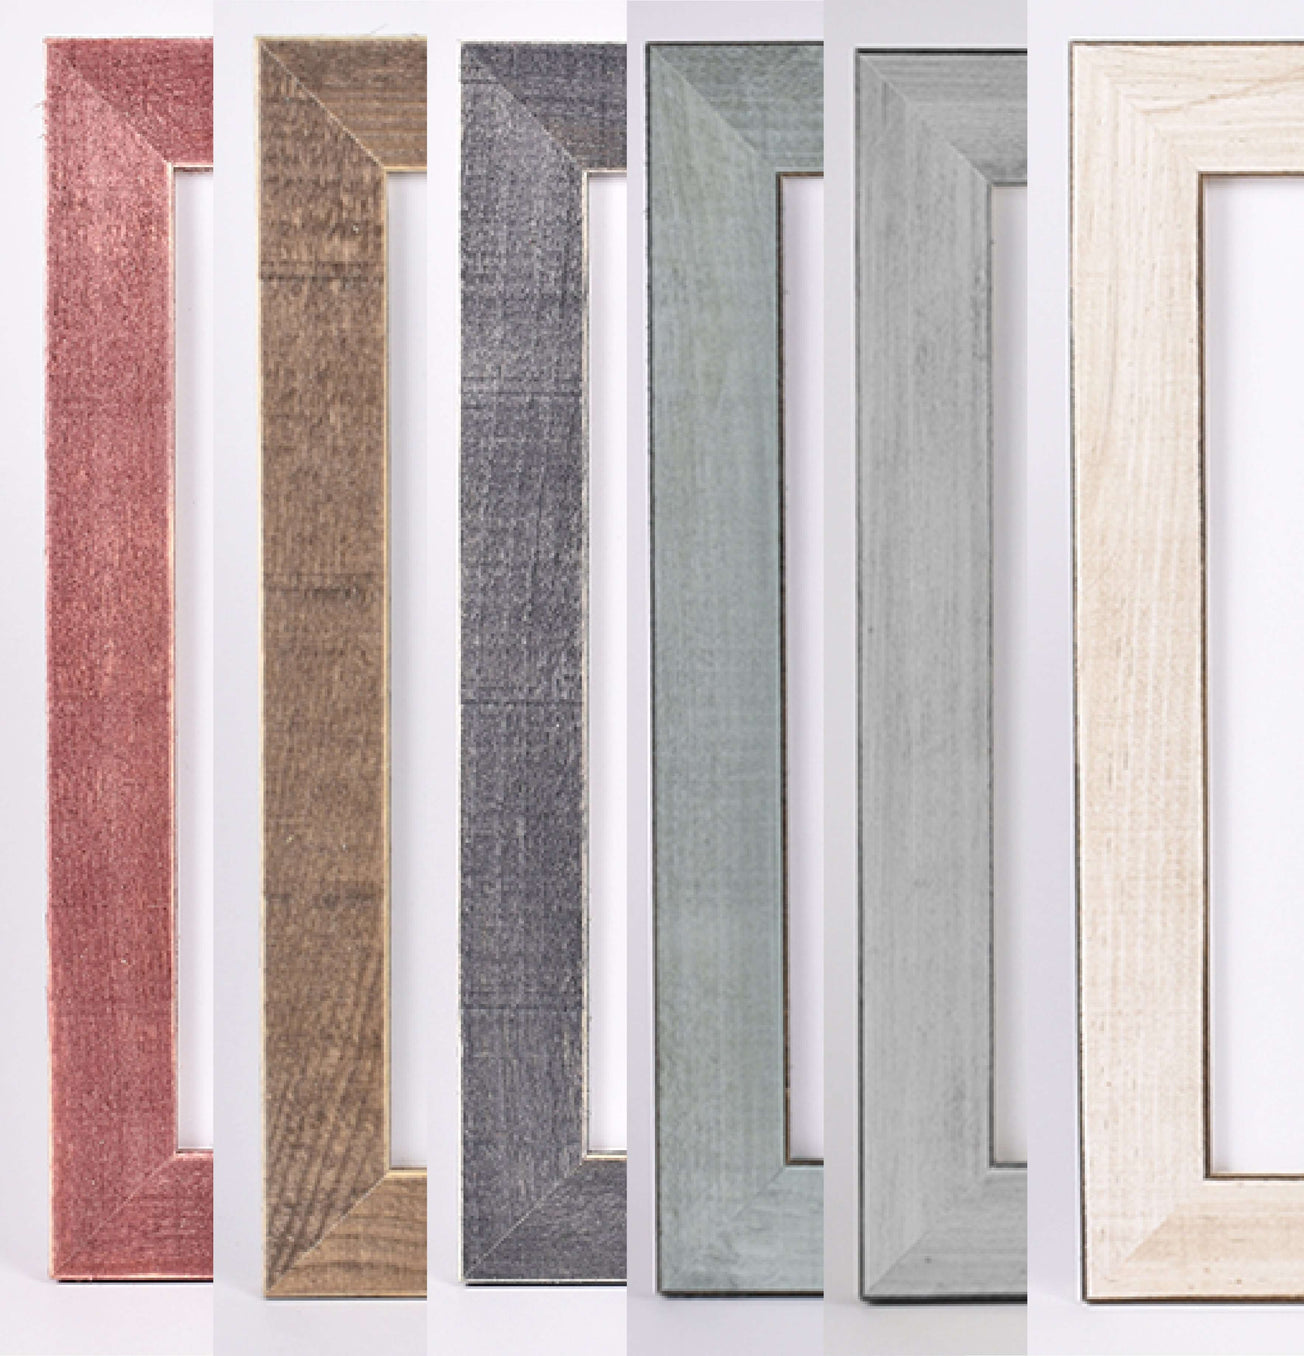 Handcrafted Wood Frames - Rustic Style